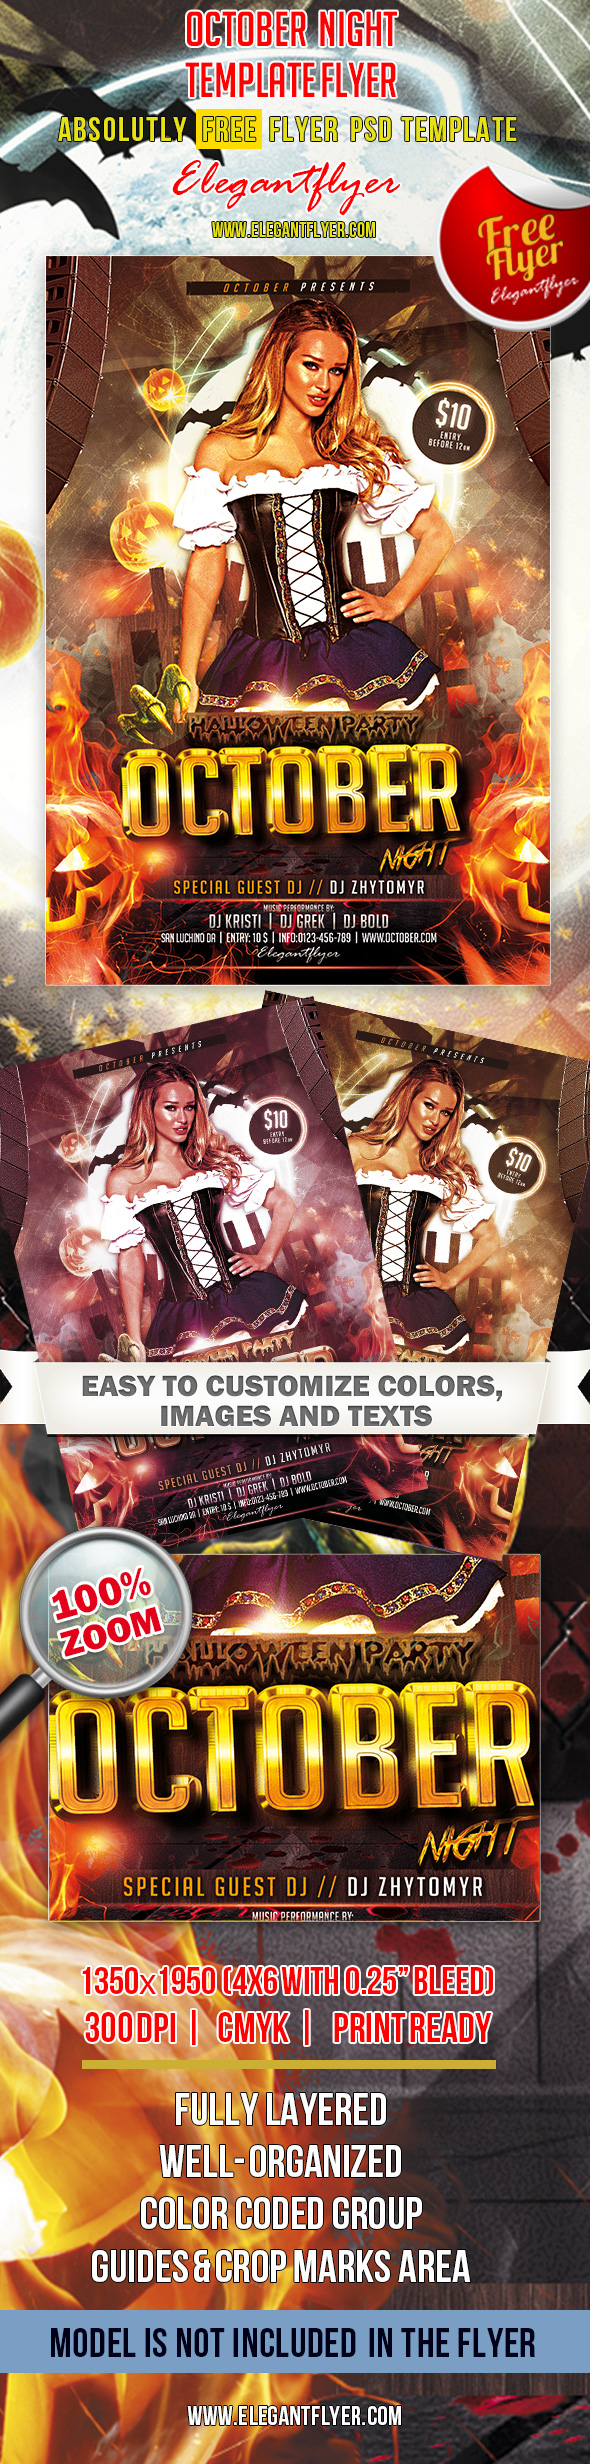 october-night-club-and-party-free-flyer-psd-template